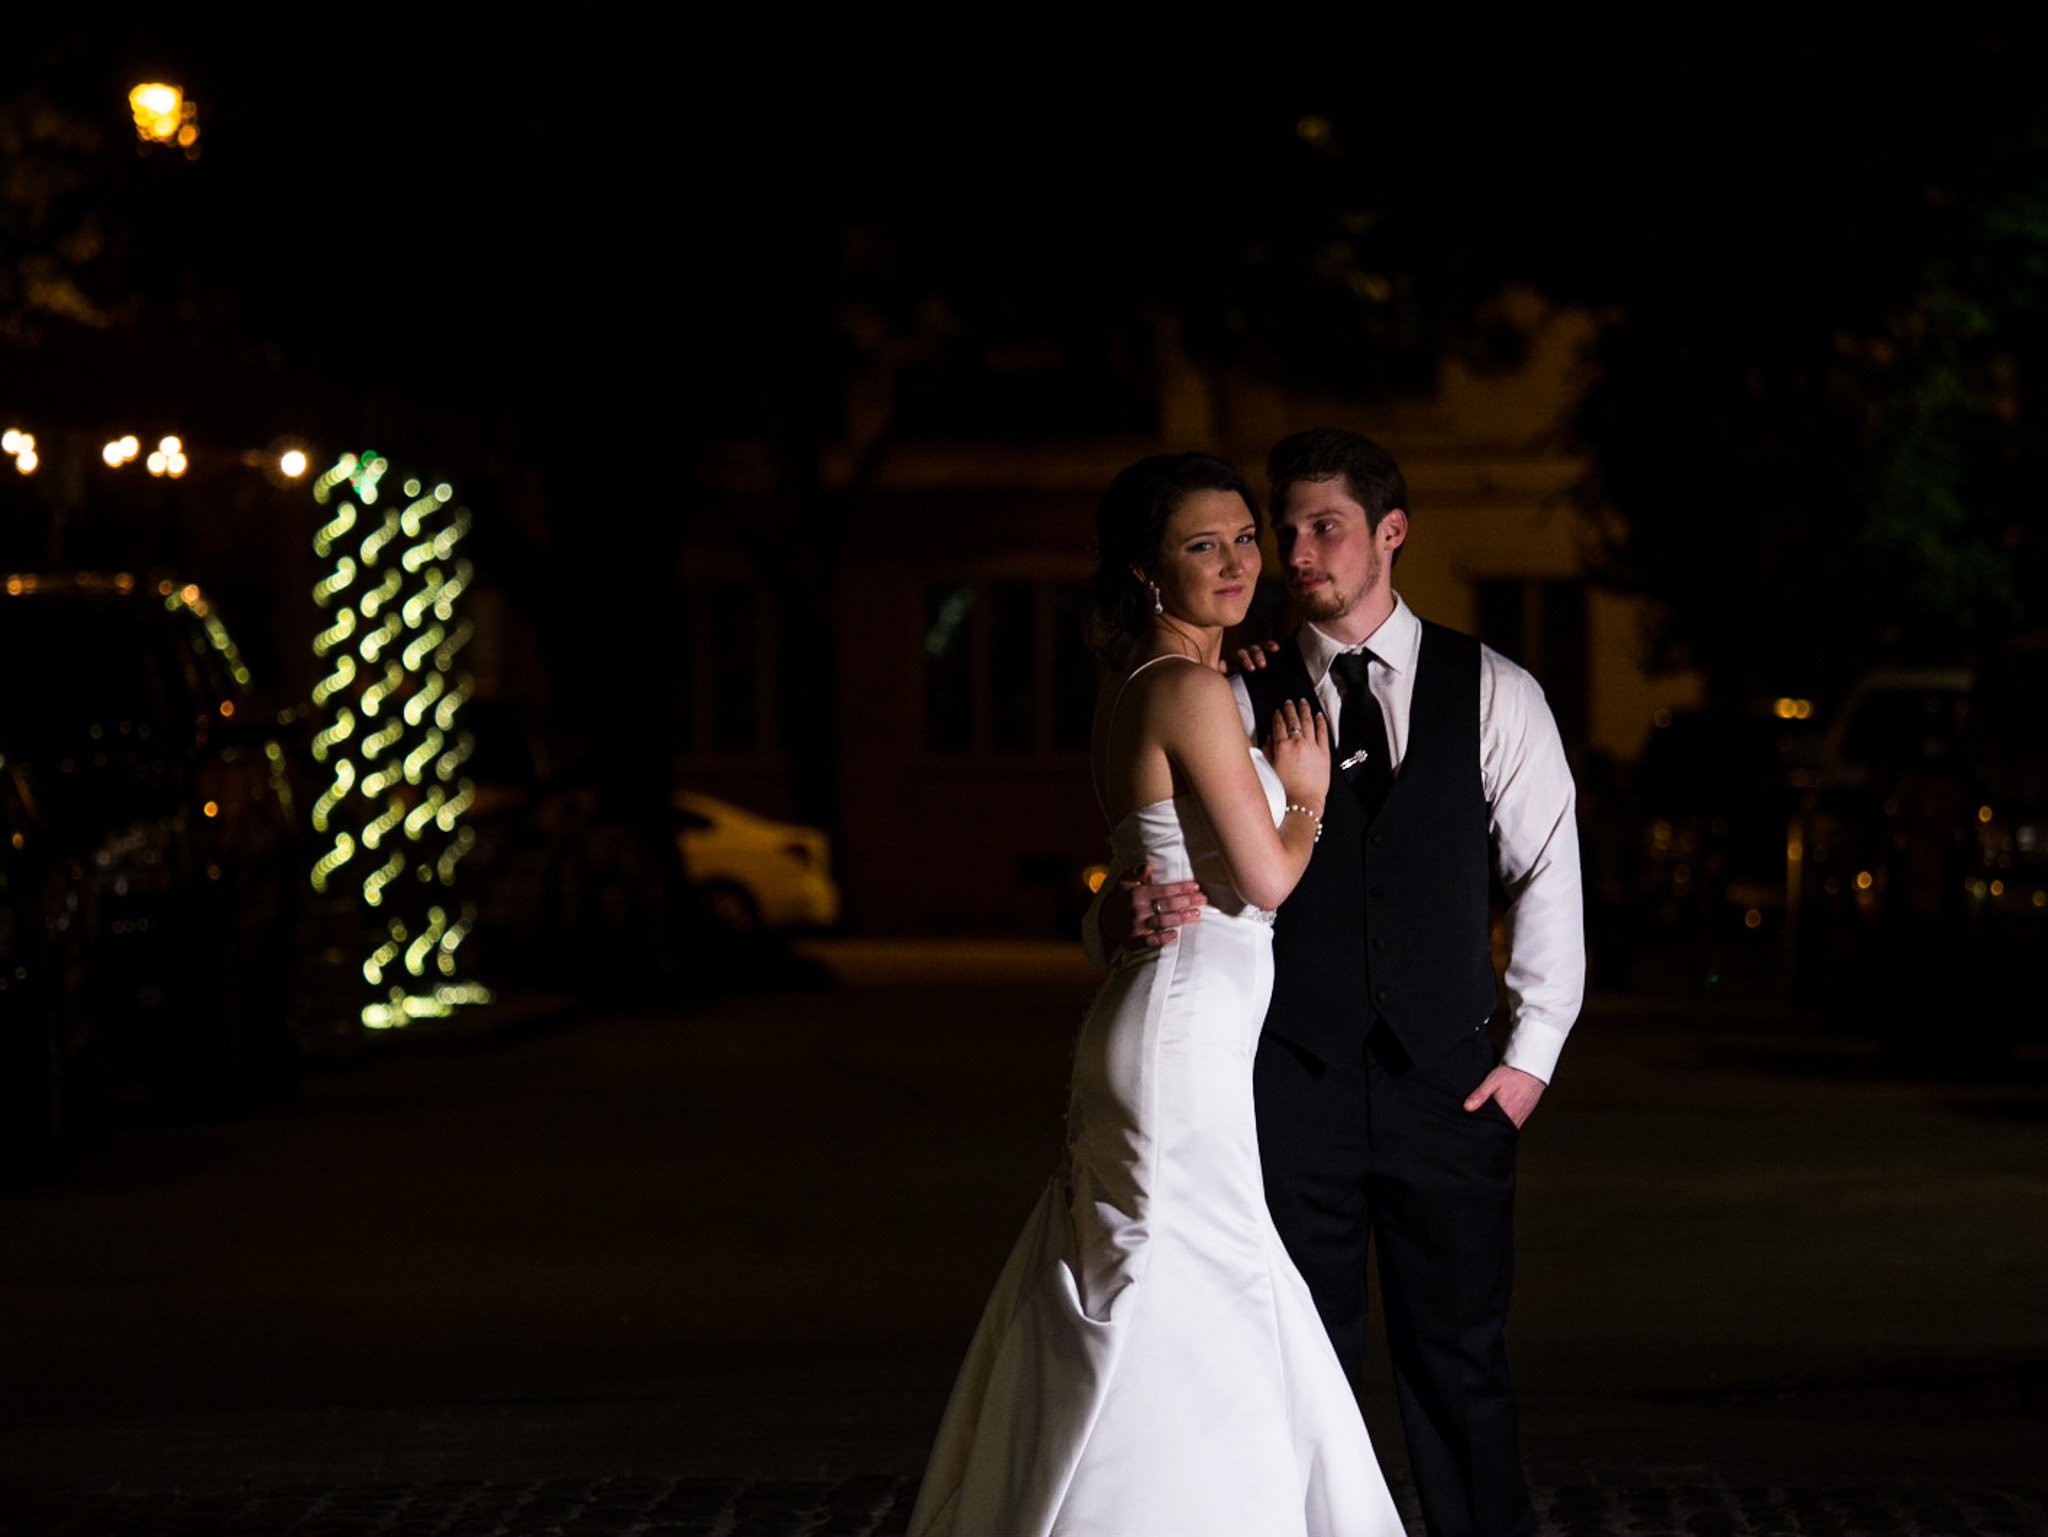 214 Martin Street, Wedding Photography, Raleigh, NC, Bride and Groom, Night Portrait, Street